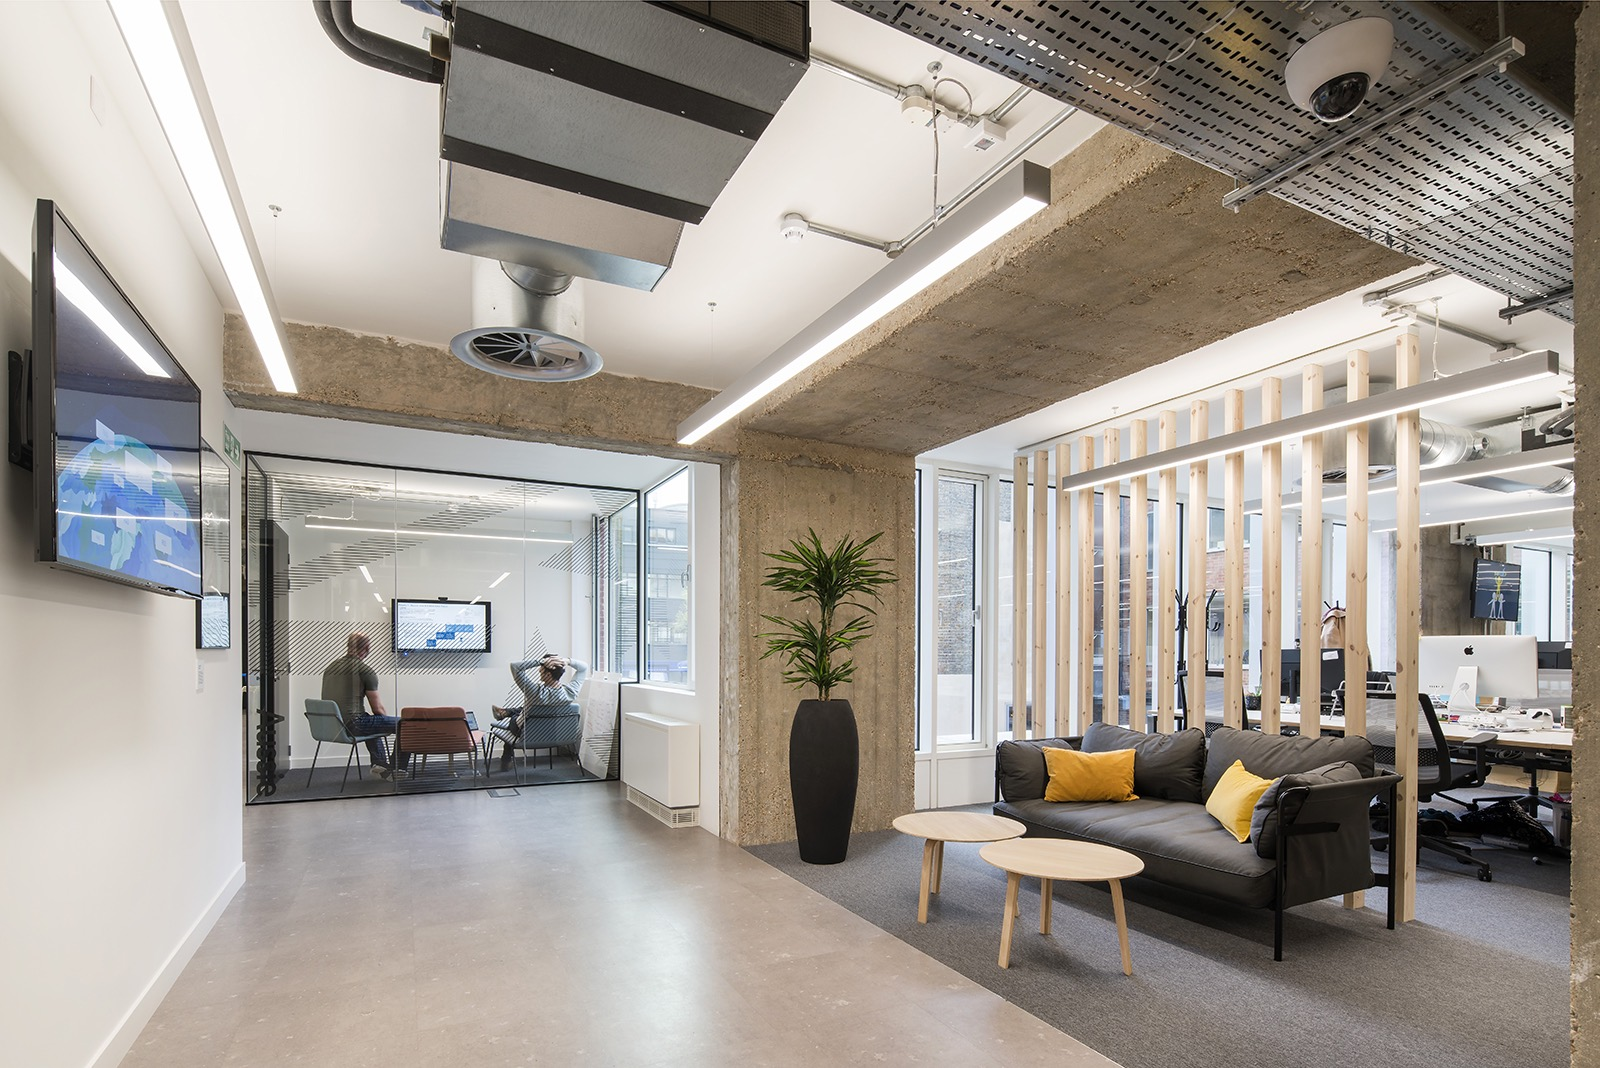 gocardless-london-office-2